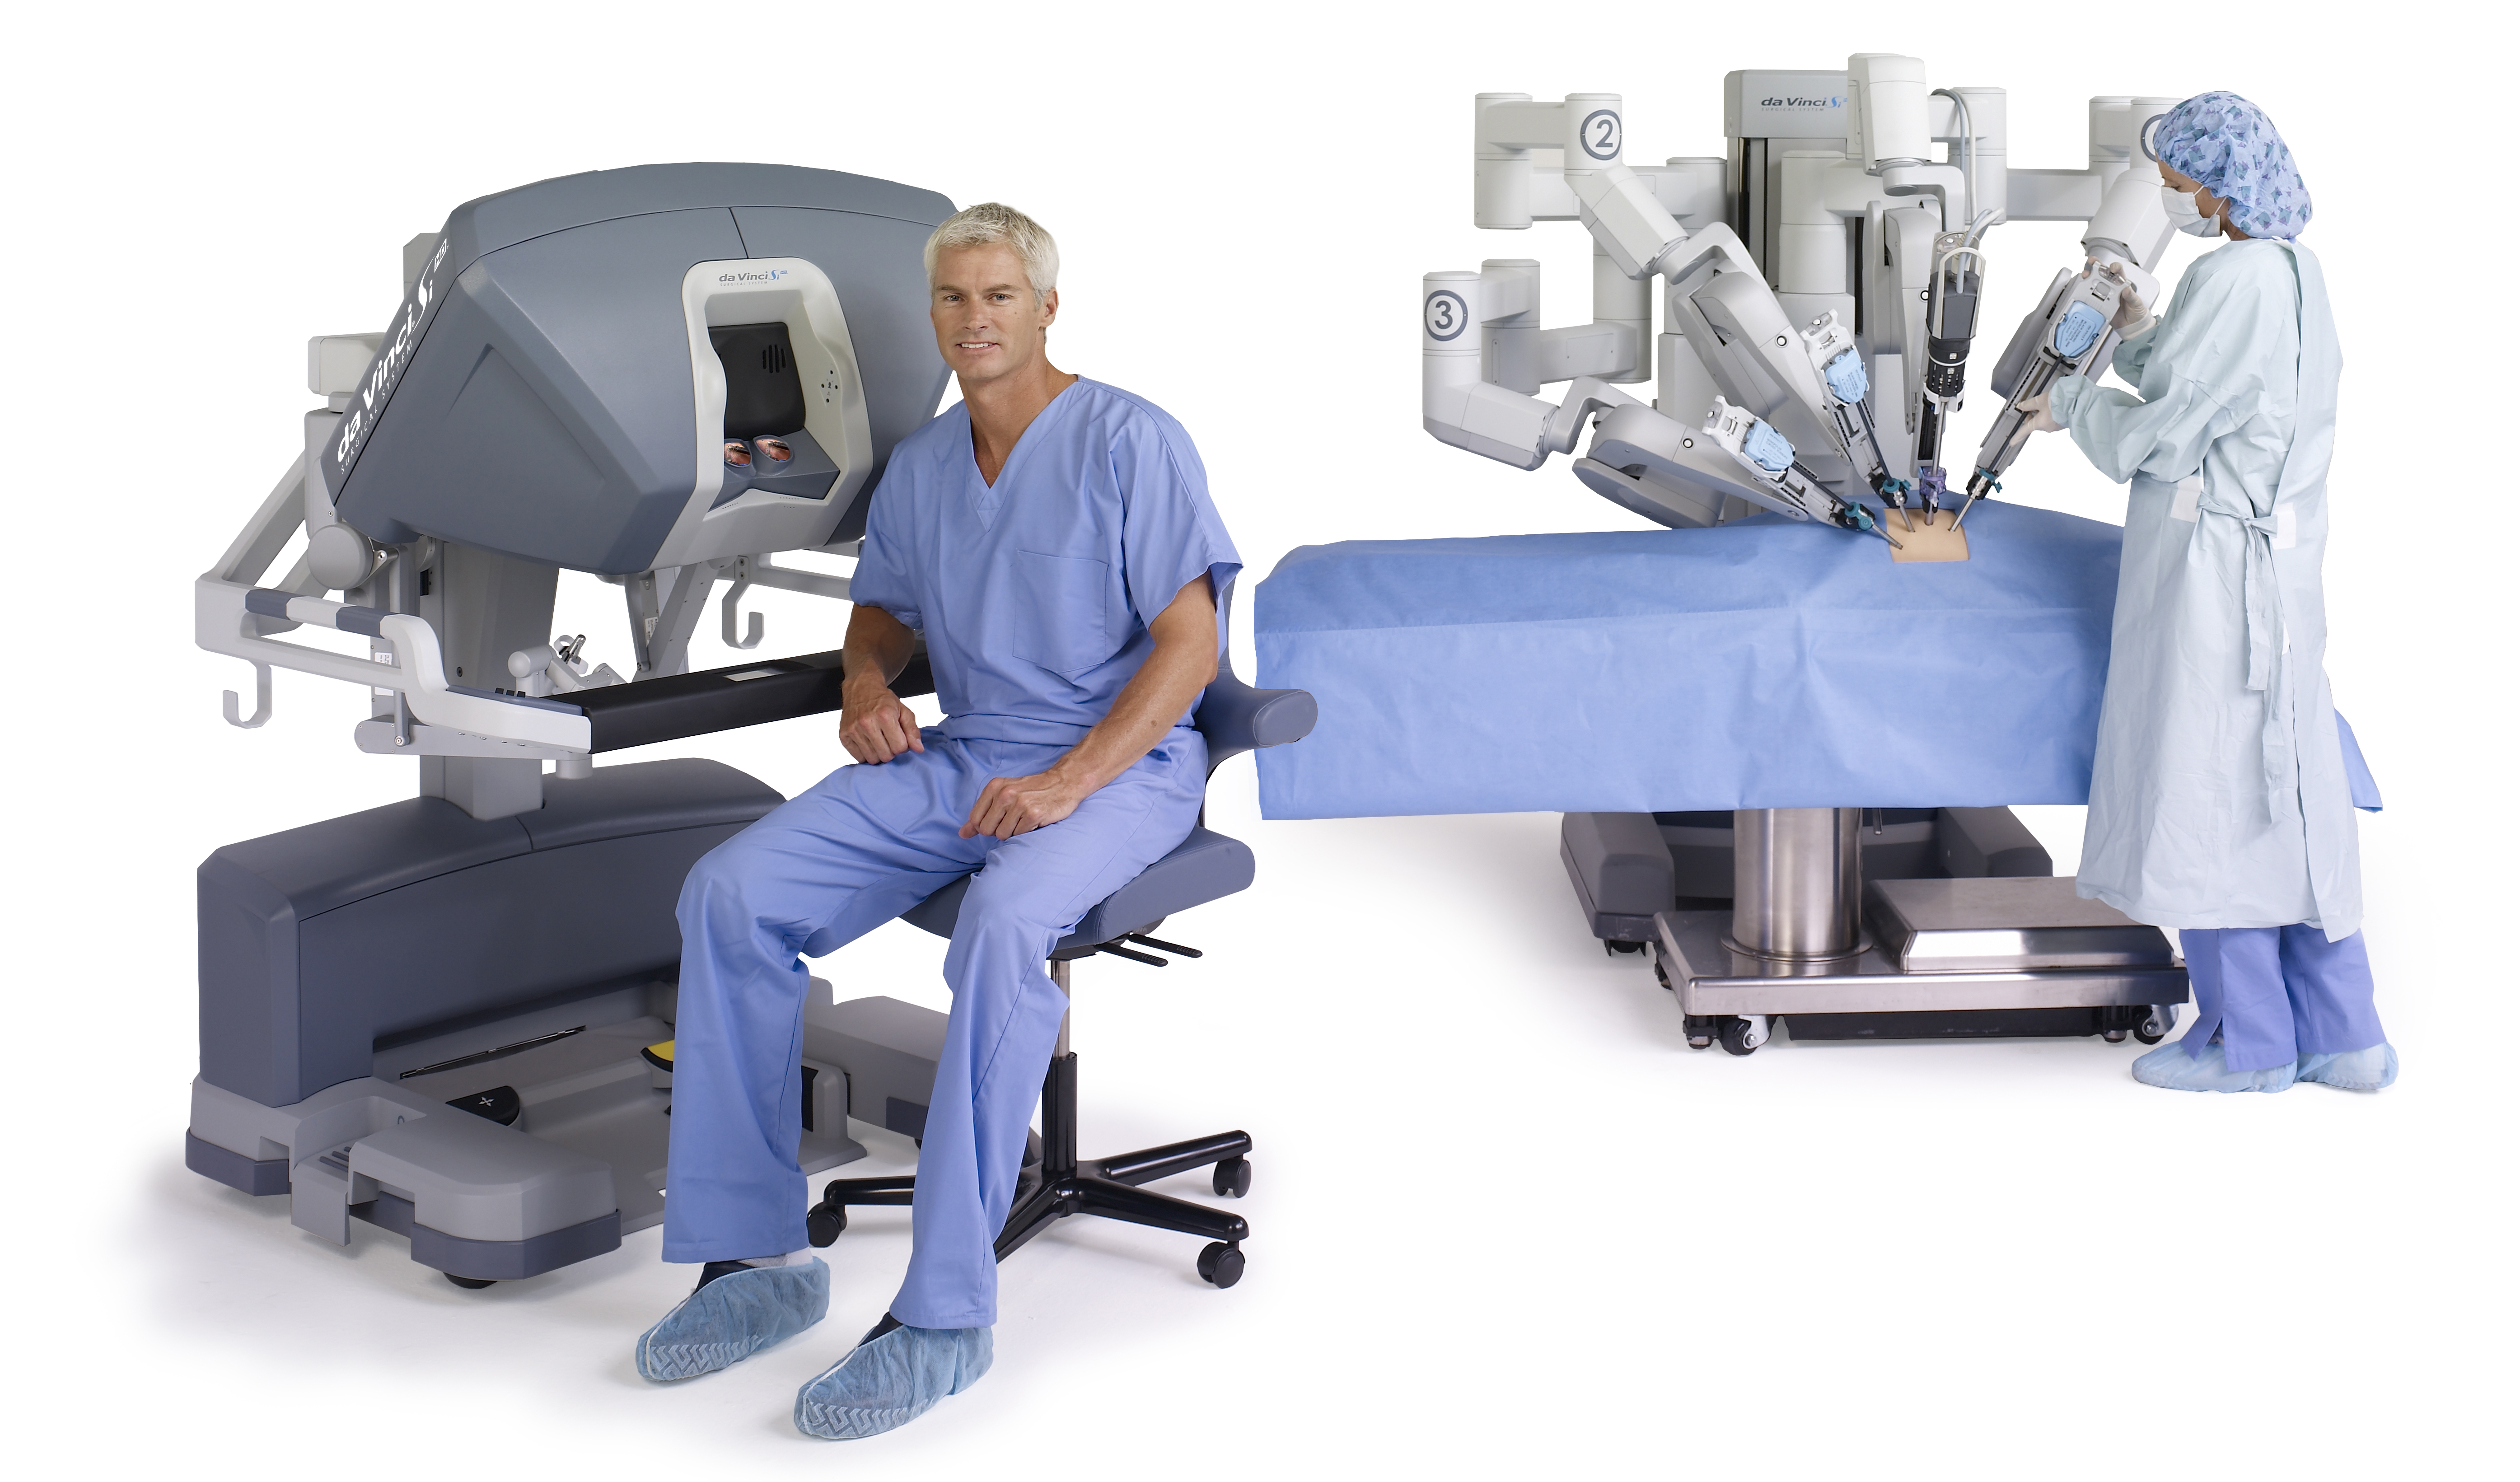 Intuitive Surgical Reports New Employee Option Grants for October 2015